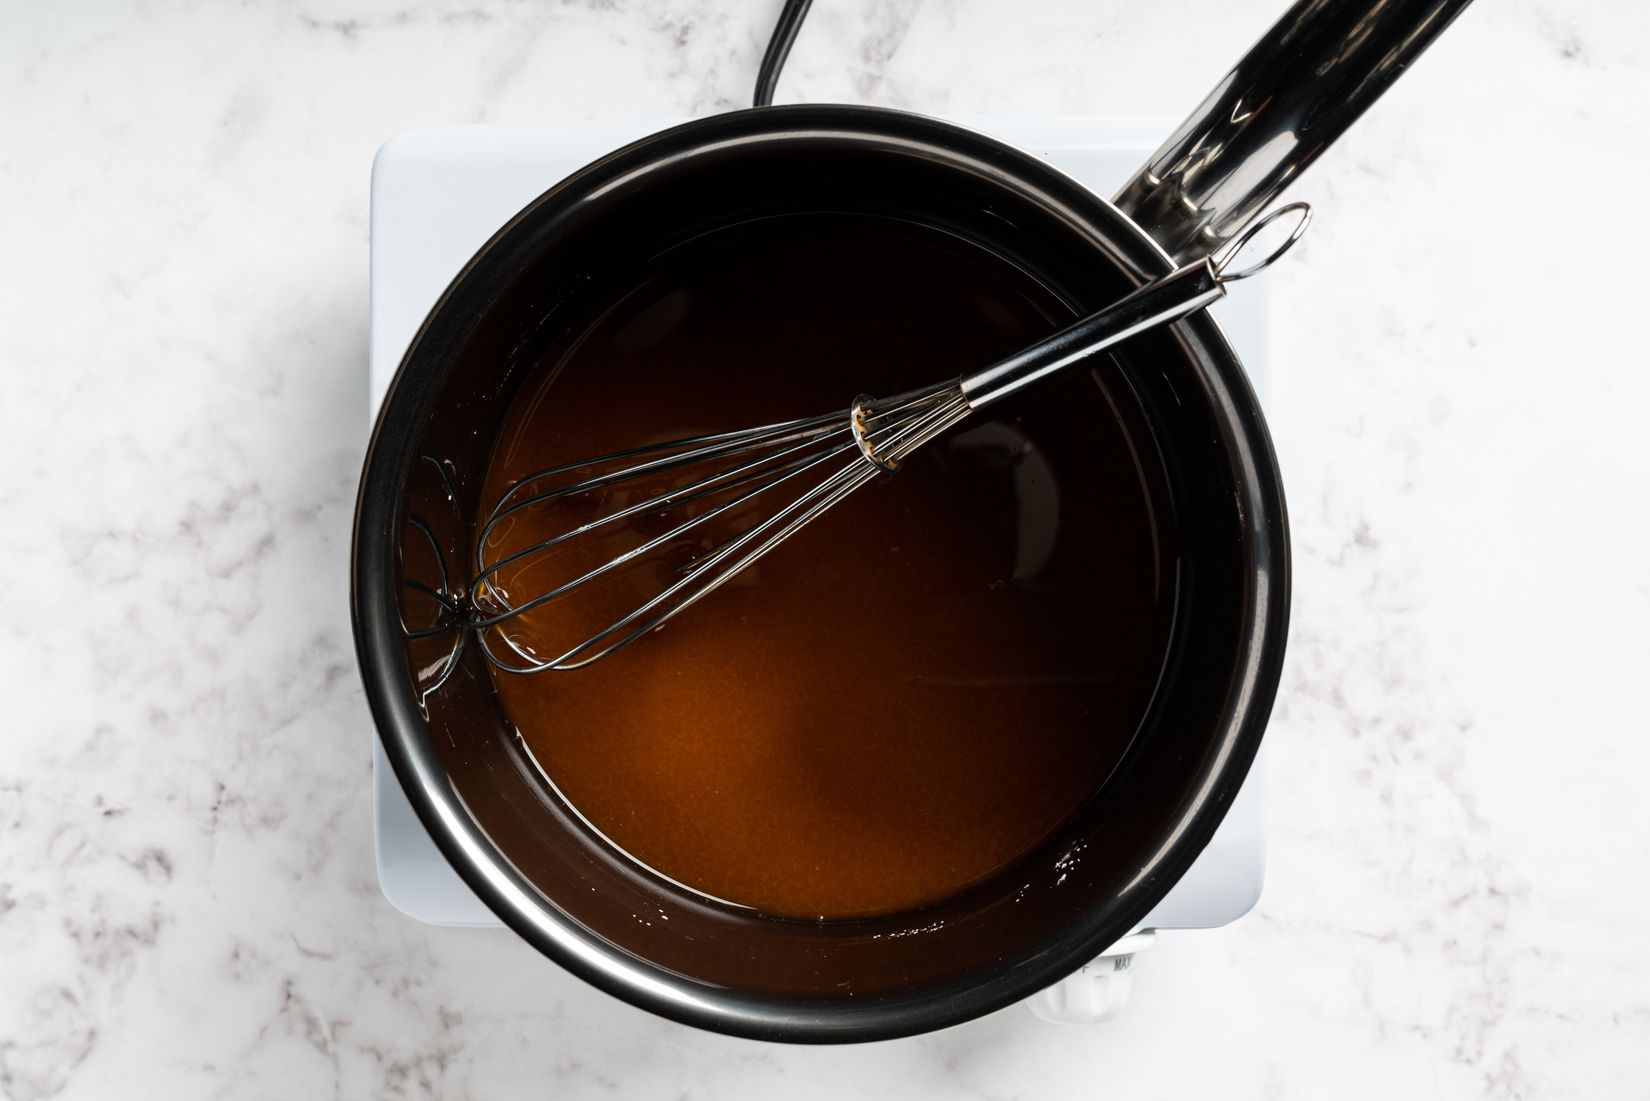 whisking the sauce